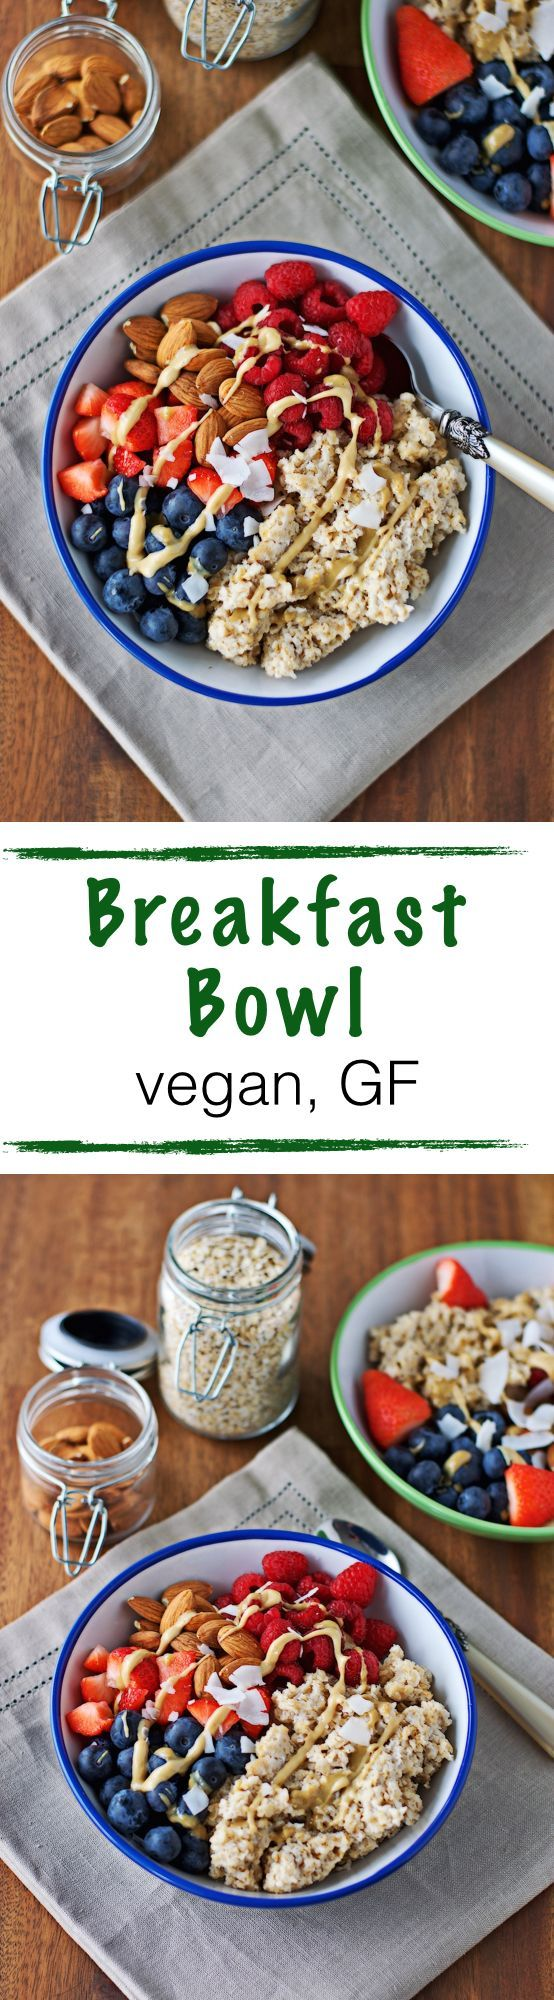 Quick and easy, #vegan and #glutenfree Breakfast Bowl. My personal favorite: oats cooked in coconut milk with a hint of maple, fresh berries and almonds. Sprinkled with nut butter and coconut flakes.